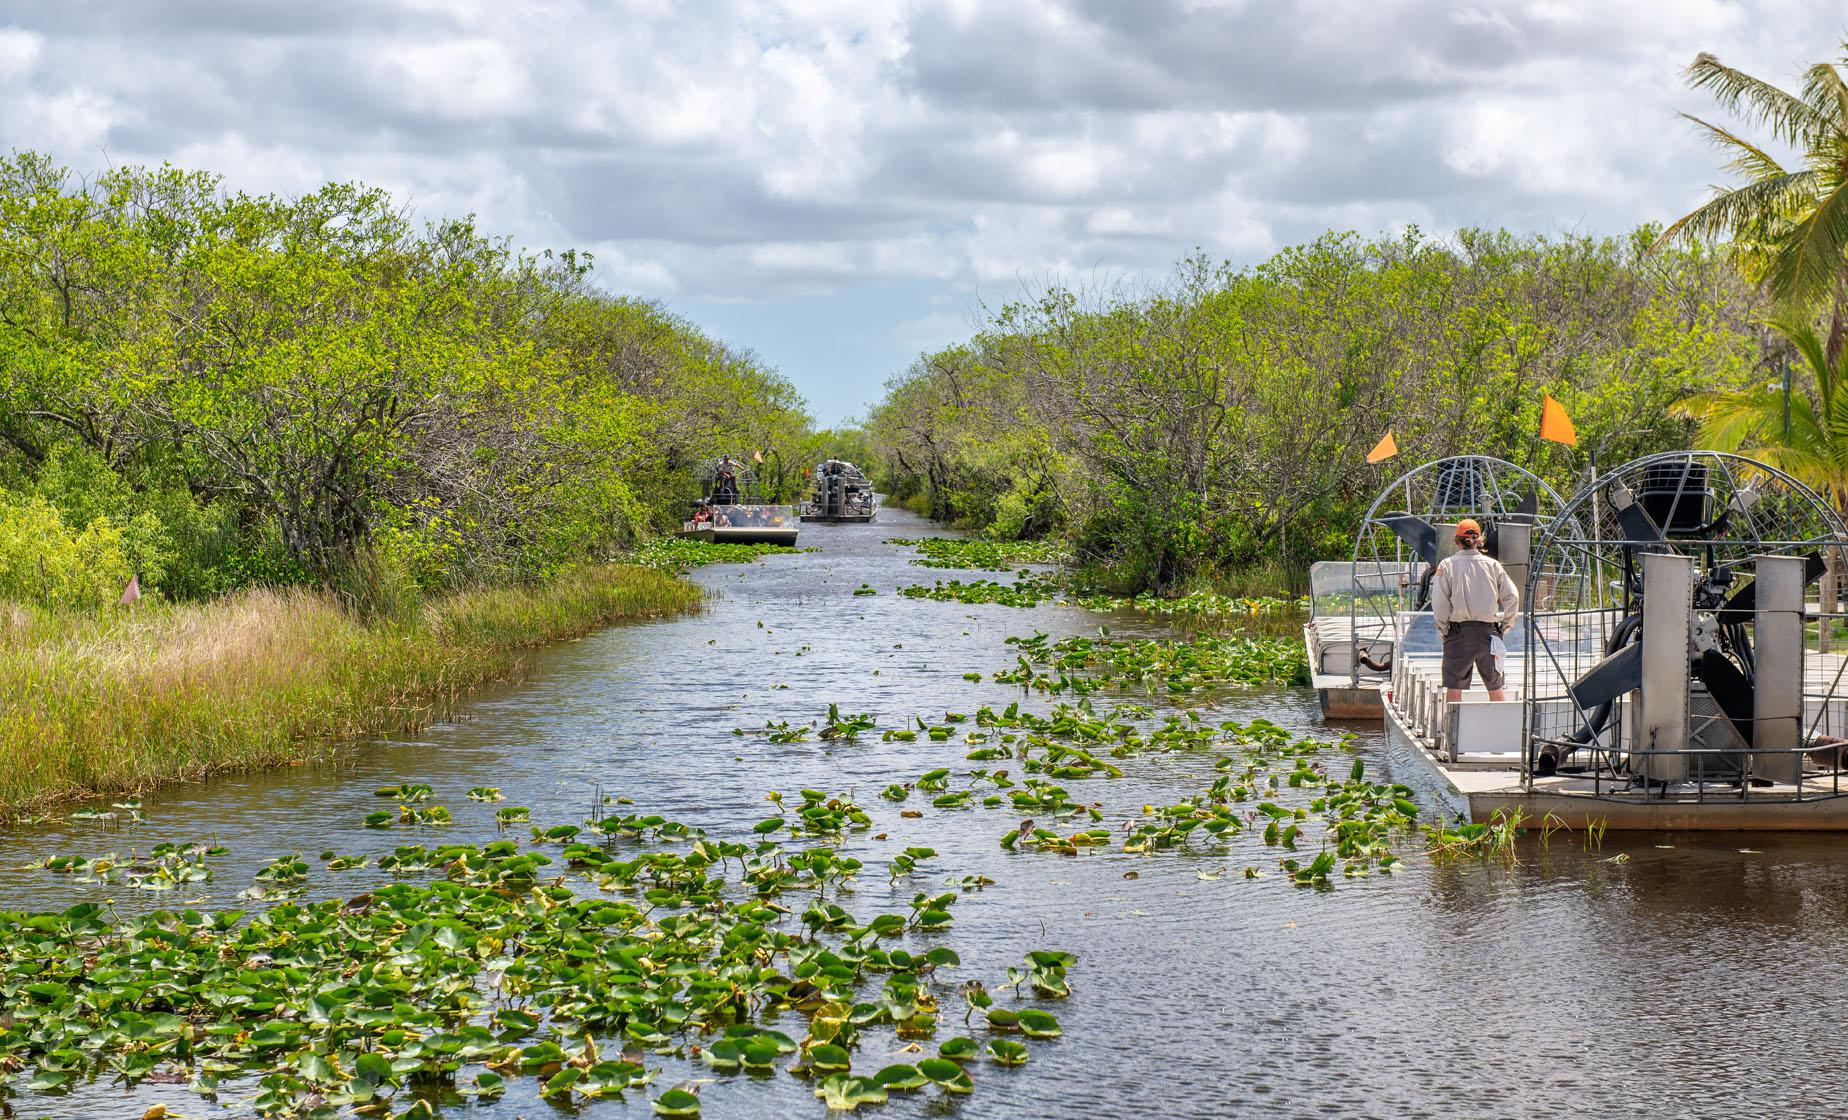 Miami City Sightseeing and Everglades Airboat Tour (Downtown Miami, Coconut Grove, Little Havana)